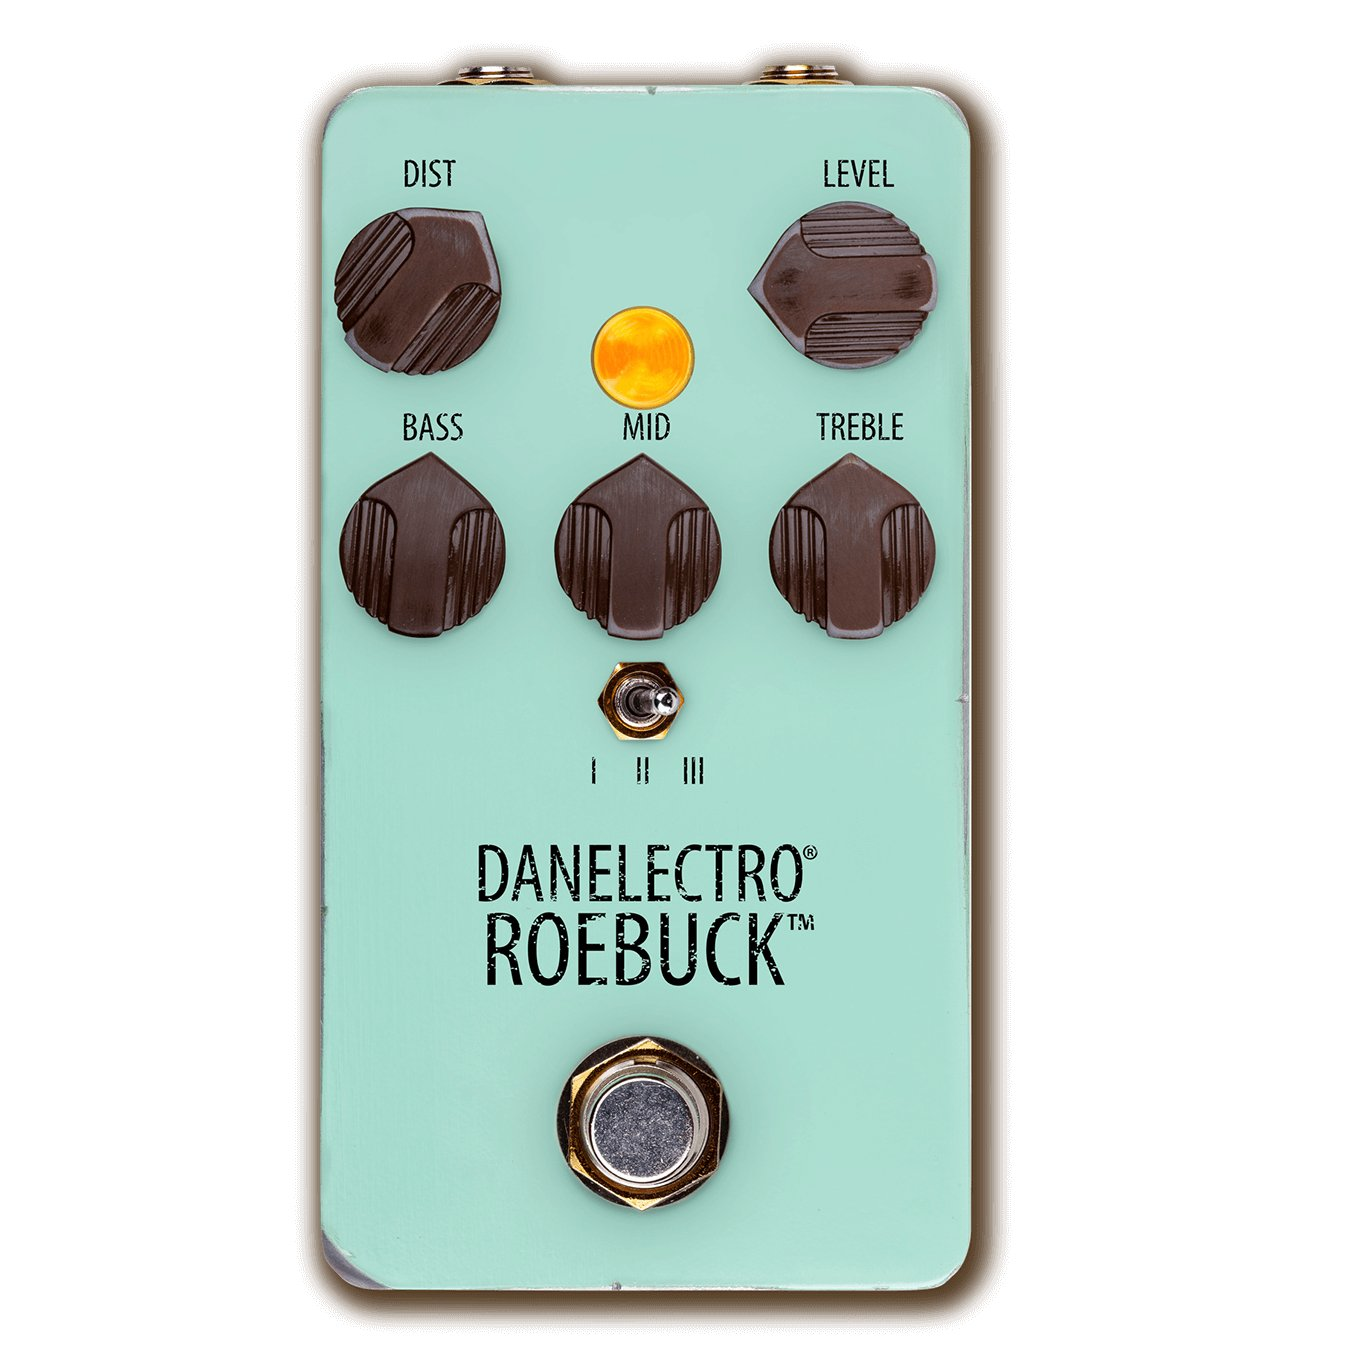 Danelectro Roebuck Distortion Pedal